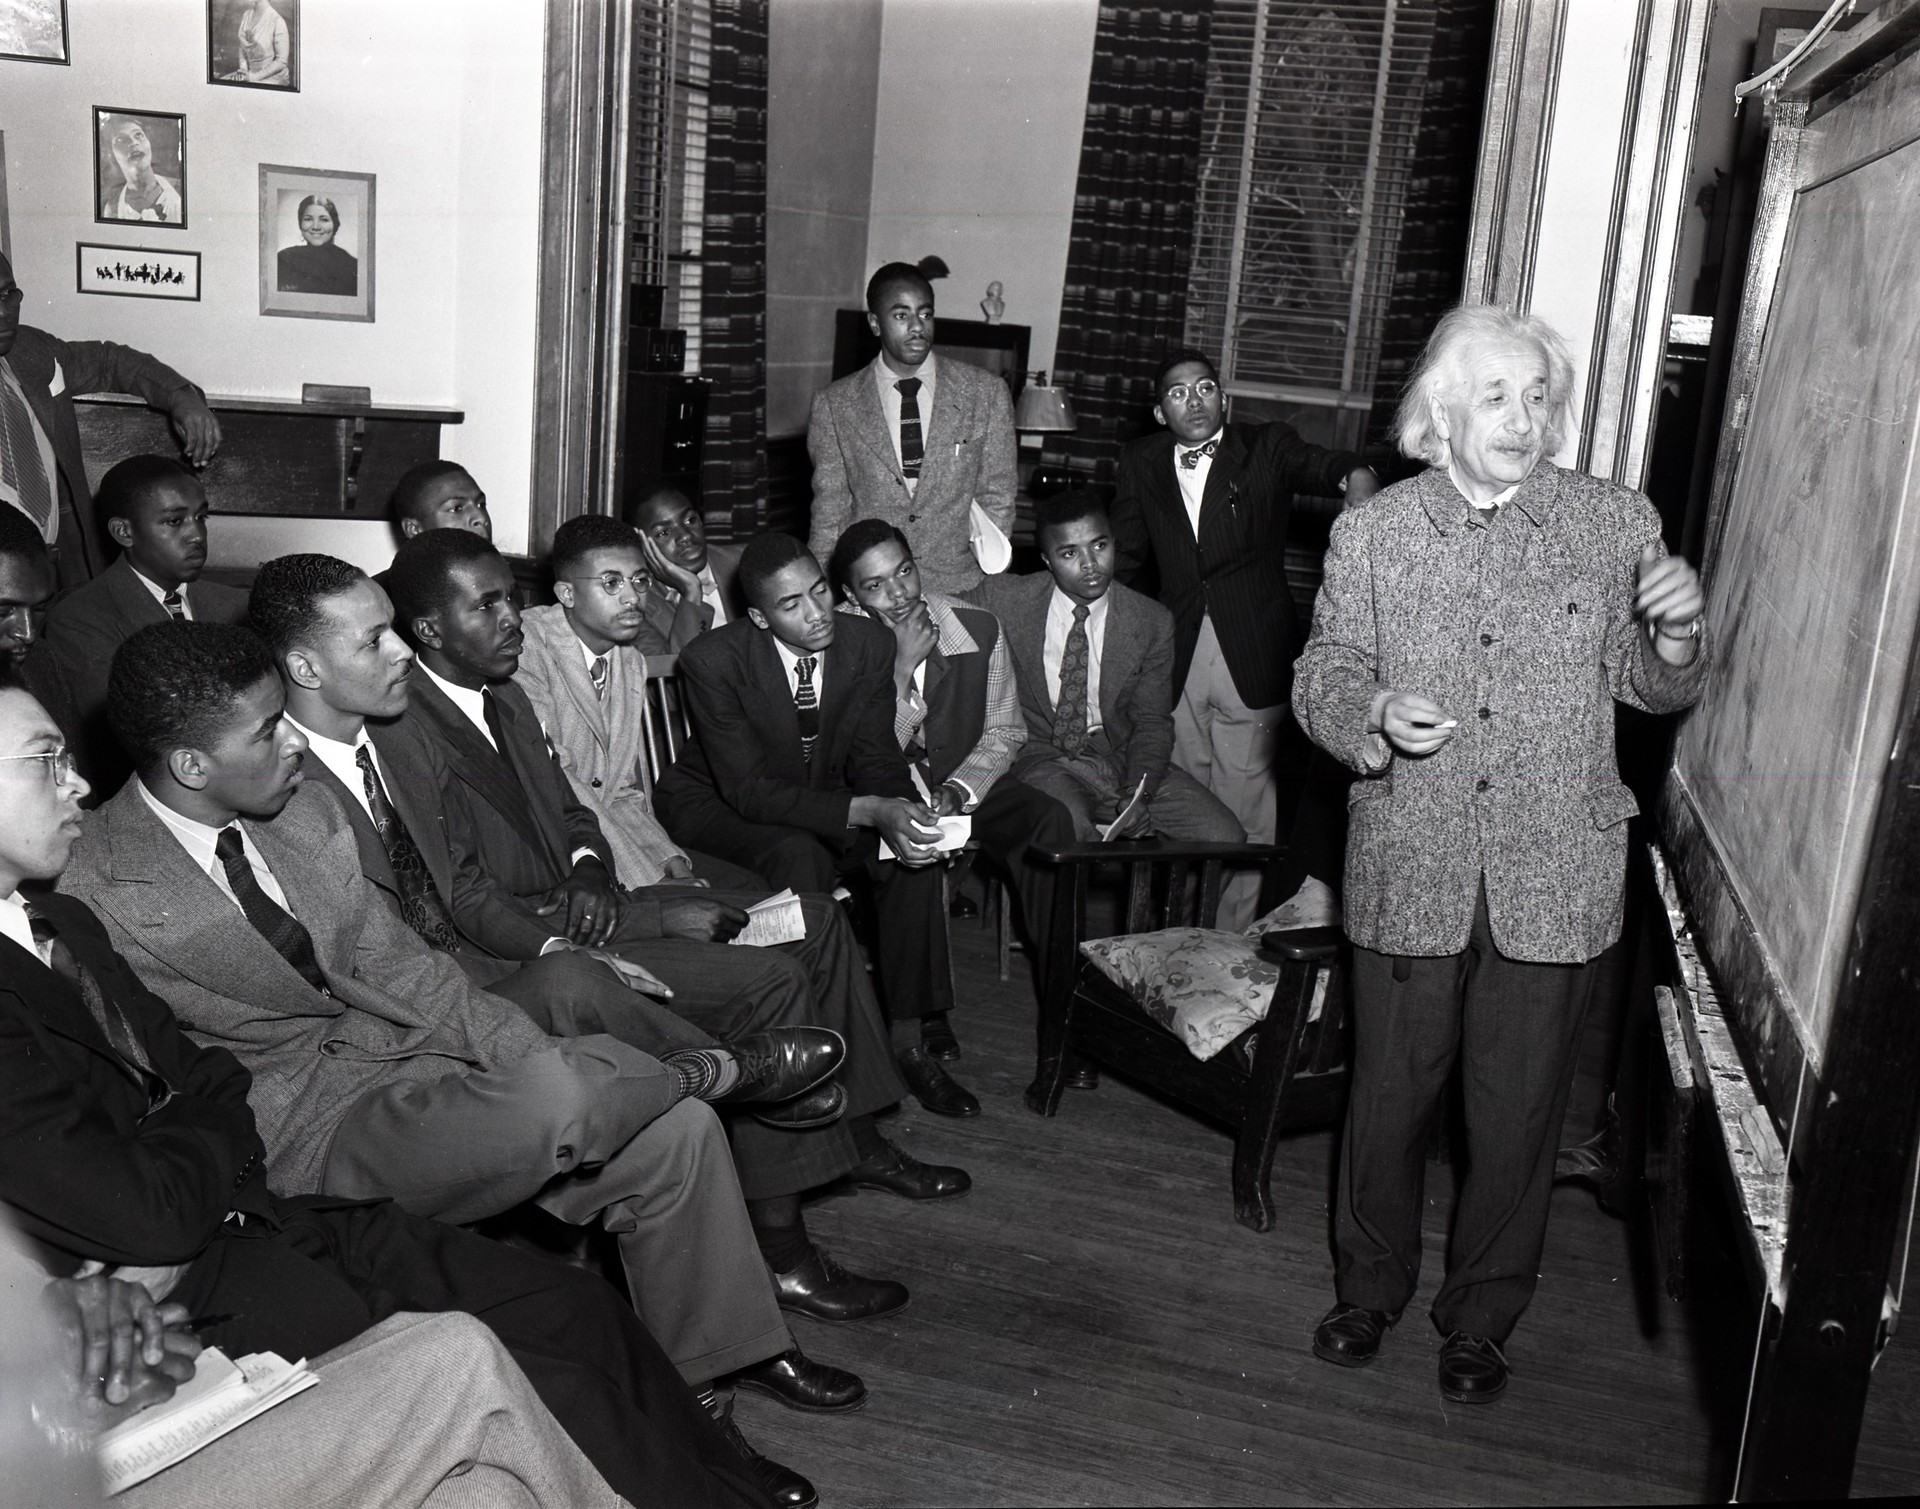 Albert Einstein and students at Lincoln University  Artist: John W. Mosley  Date: May 1946